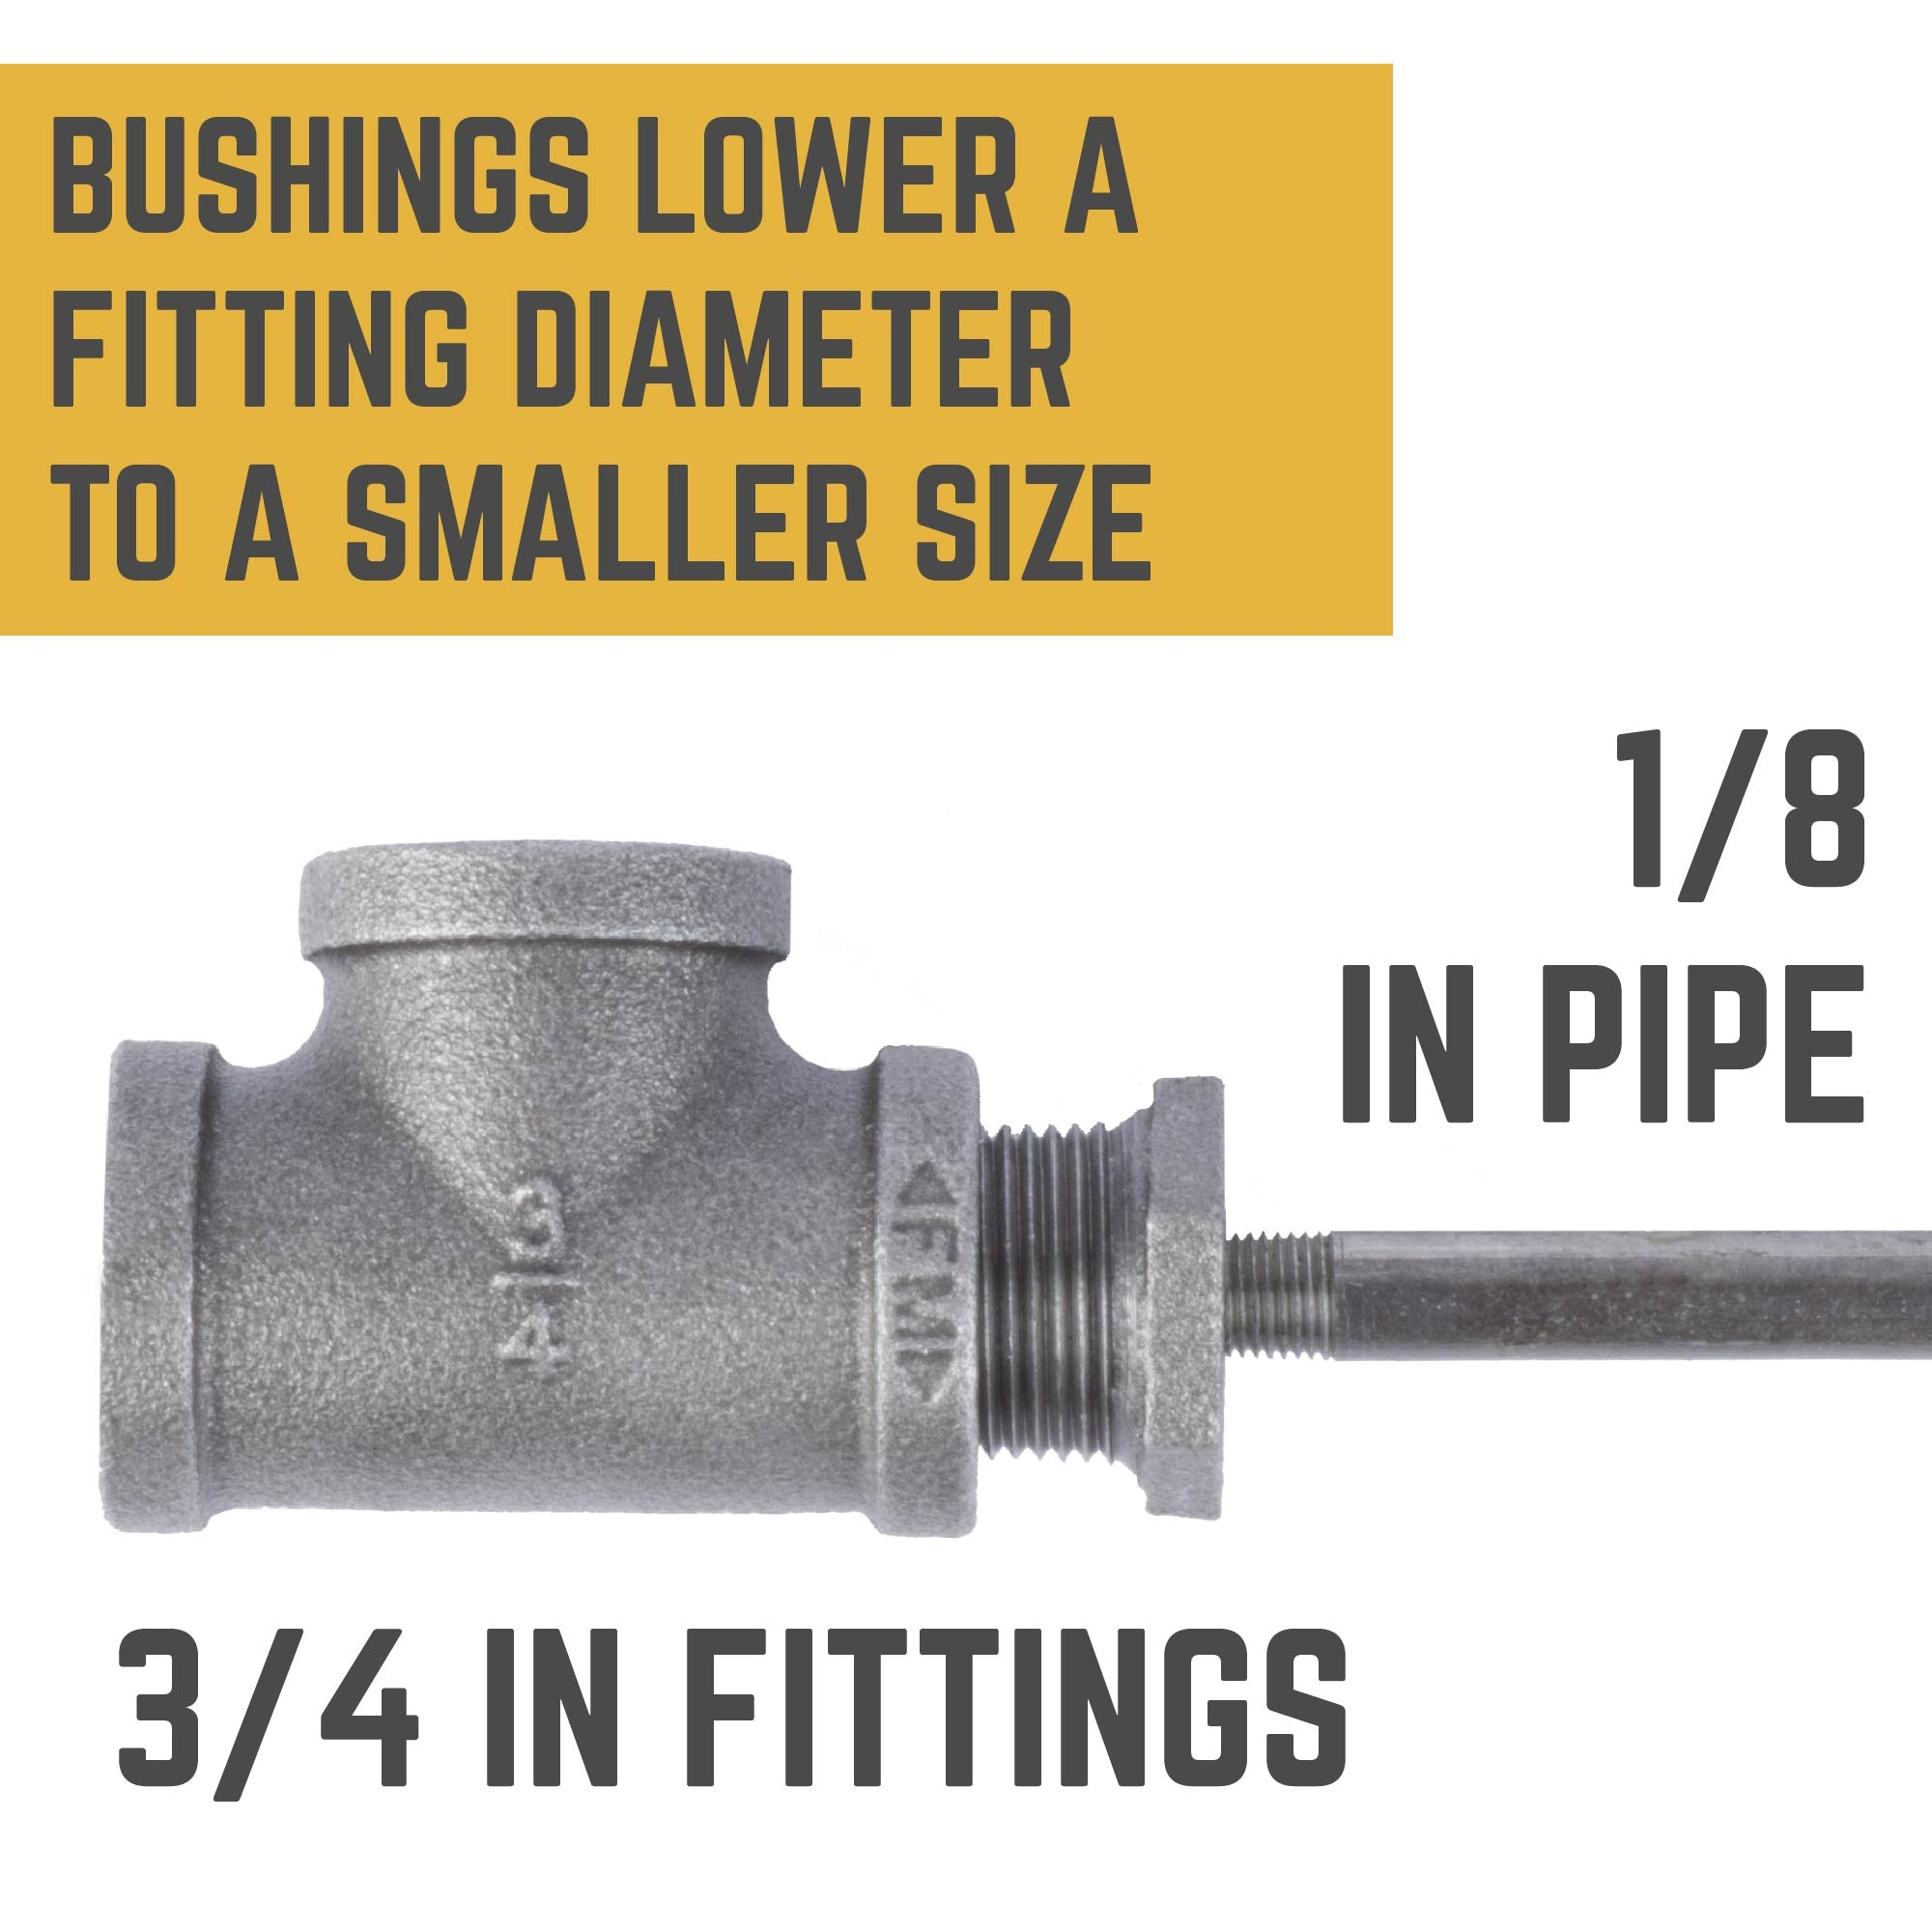 3/4 in. X 1/8 in. Bushing - Pipe Decor